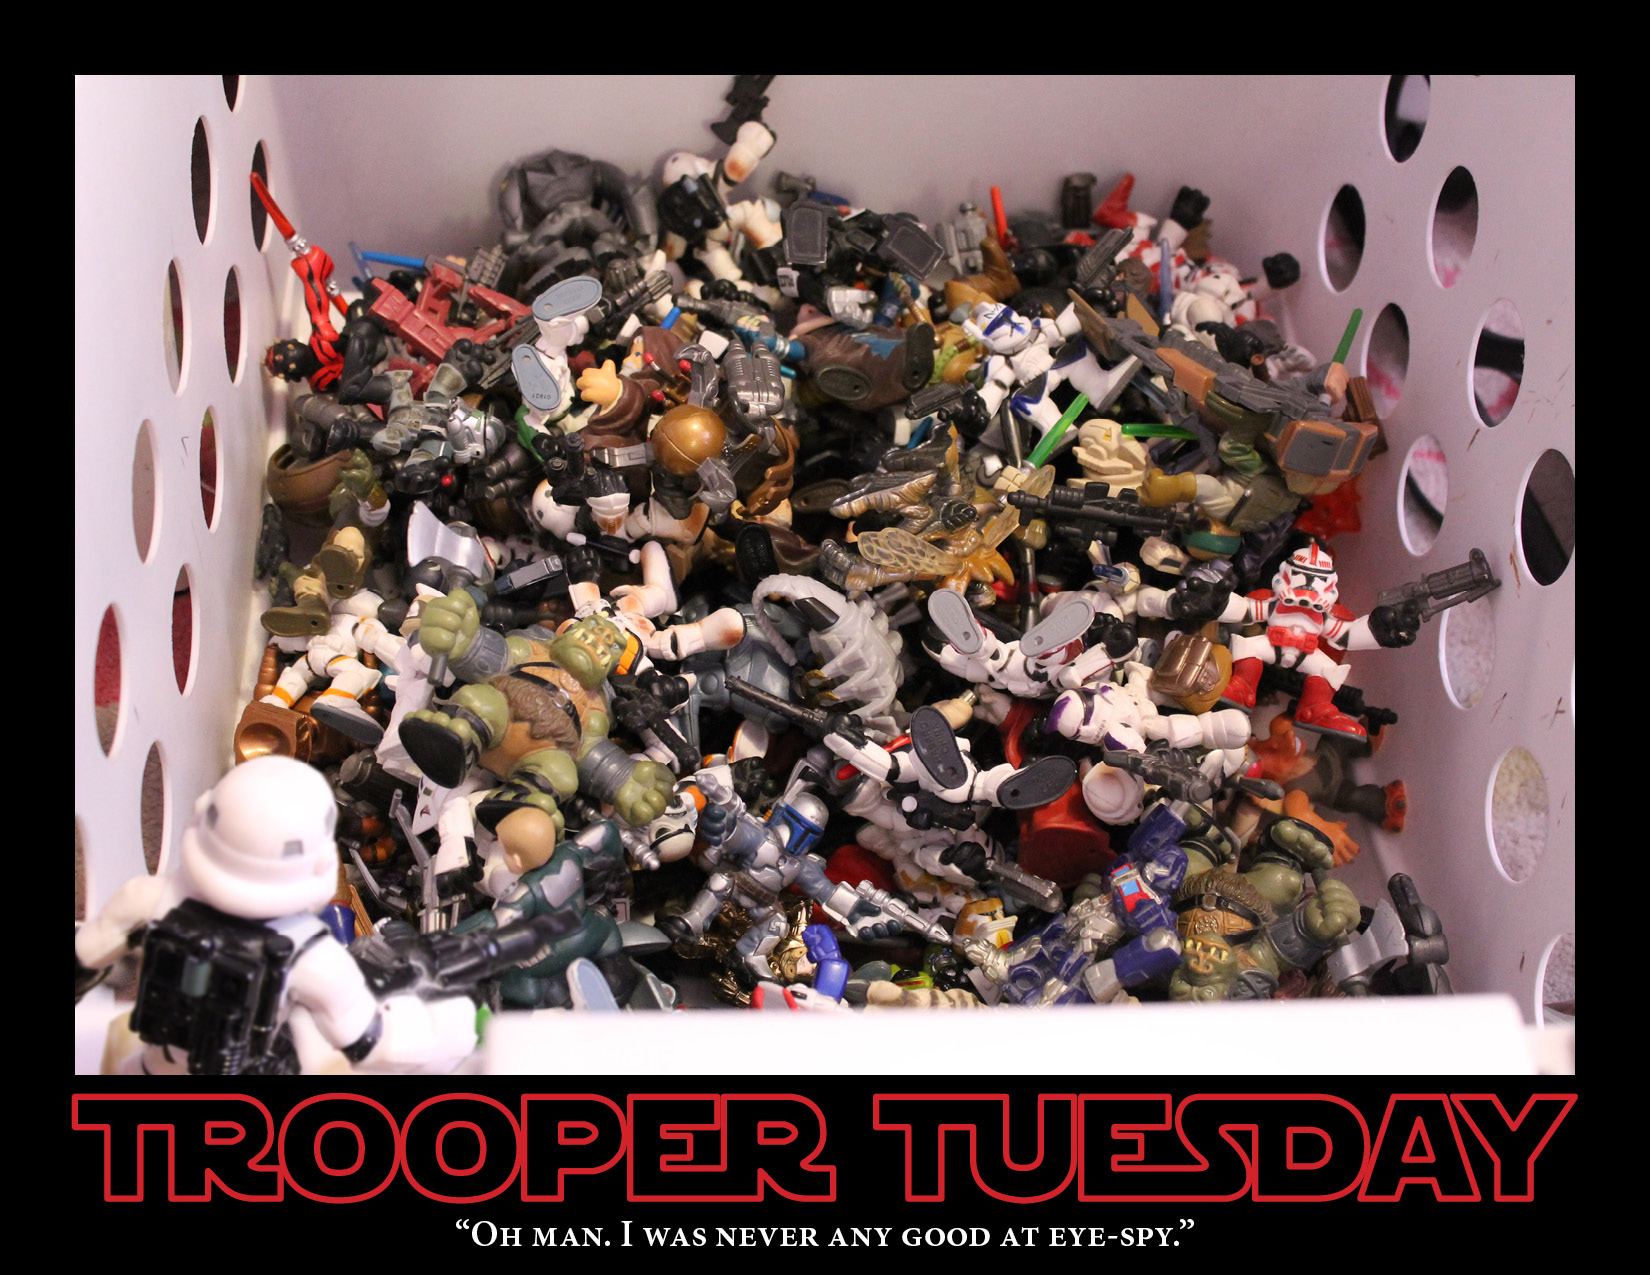 A Stormtrooper stand over a bin full of toys Star Wars figures.